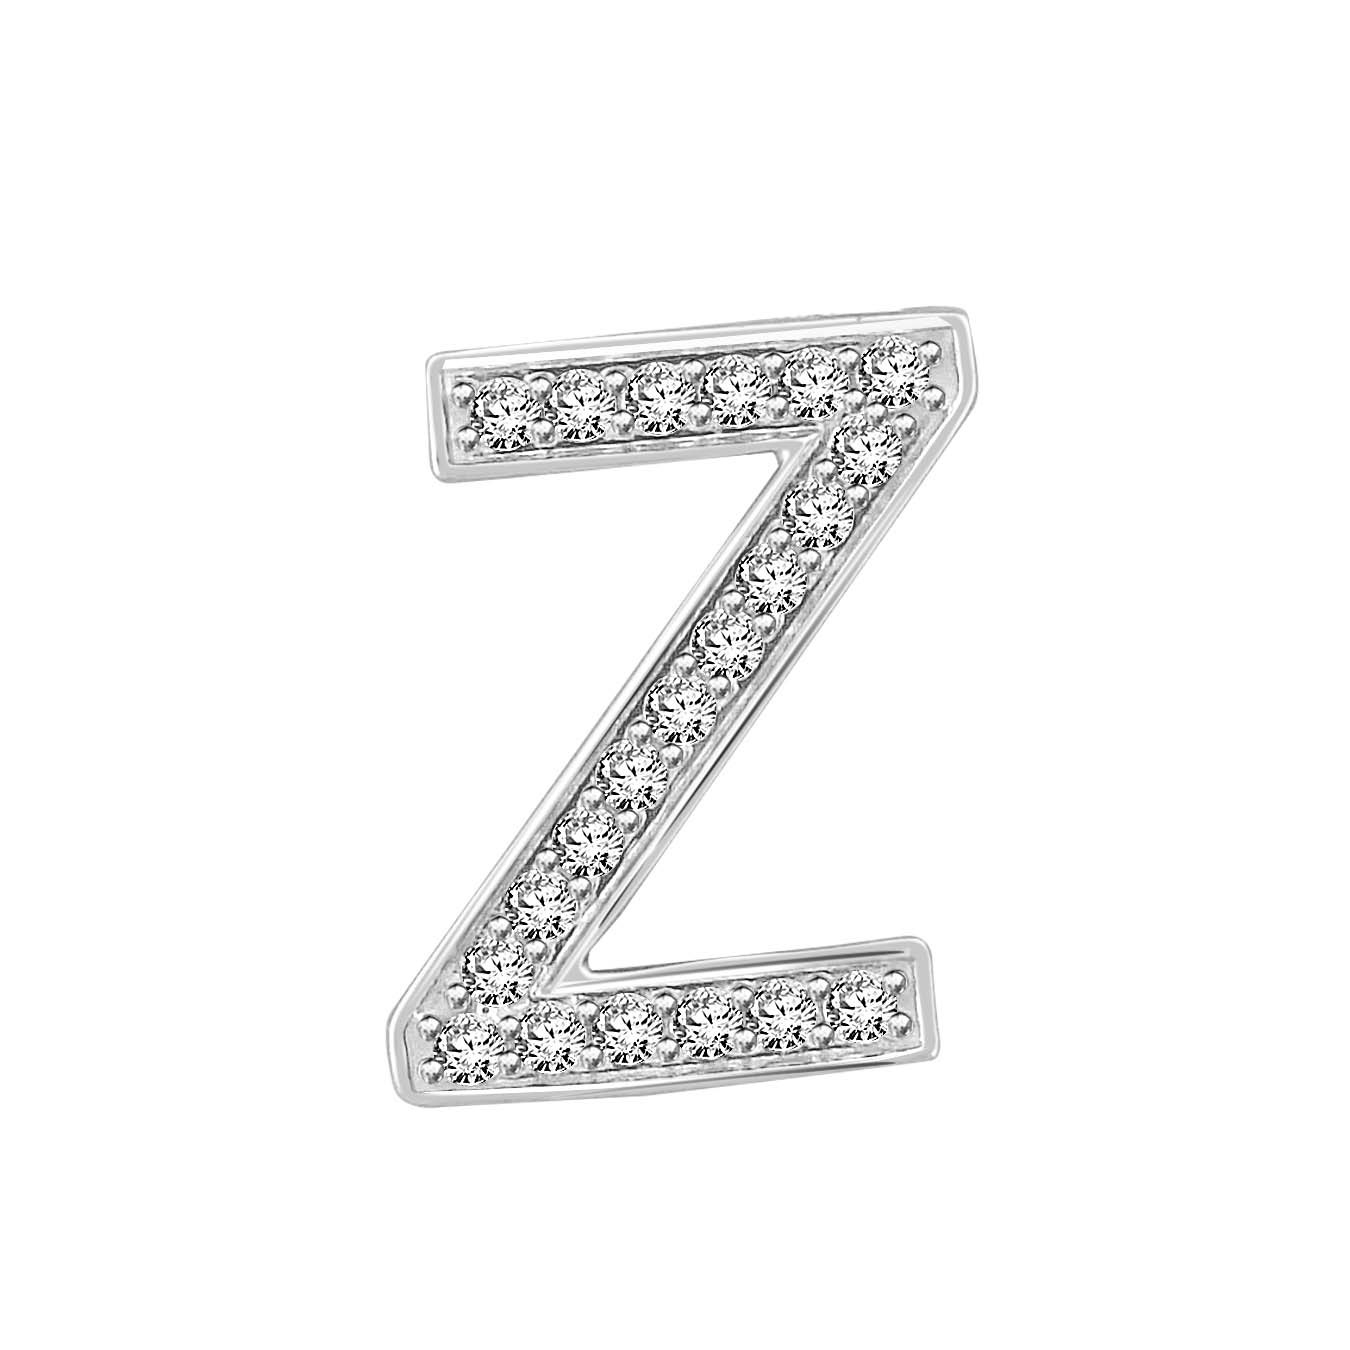 Displaying 20> Images For - Diamond Letter E...: galleryhip.com/diamond-letter-e.html